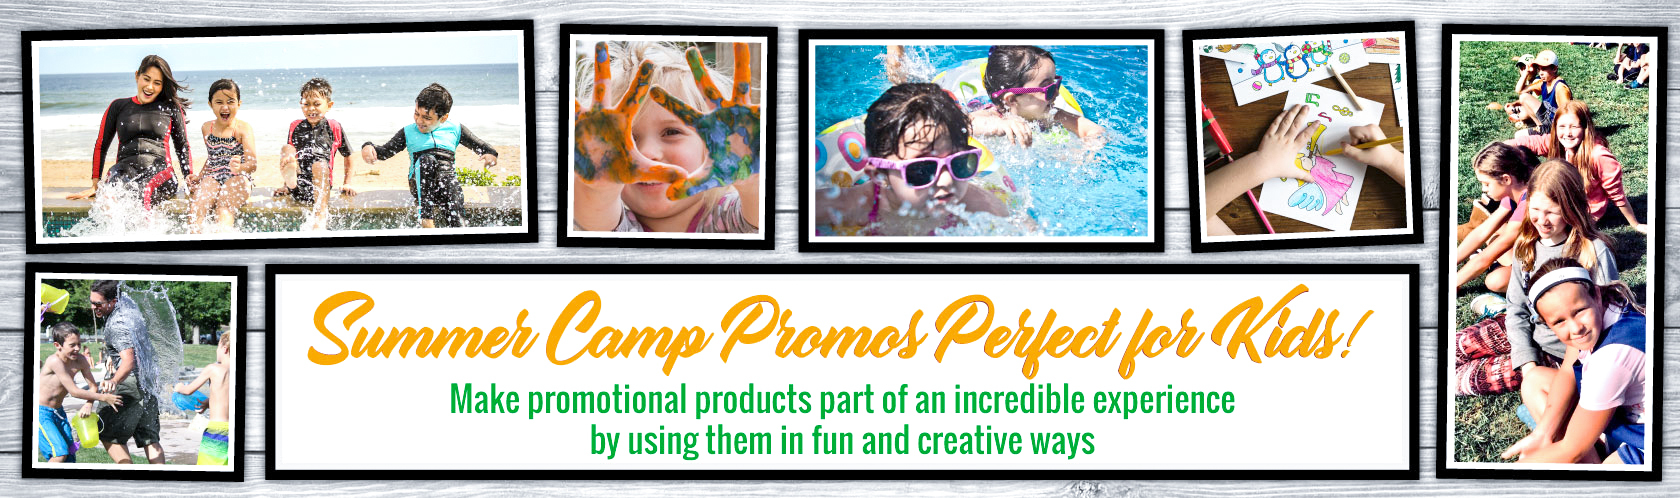 Summer Camp Promos Perfect for Kids!